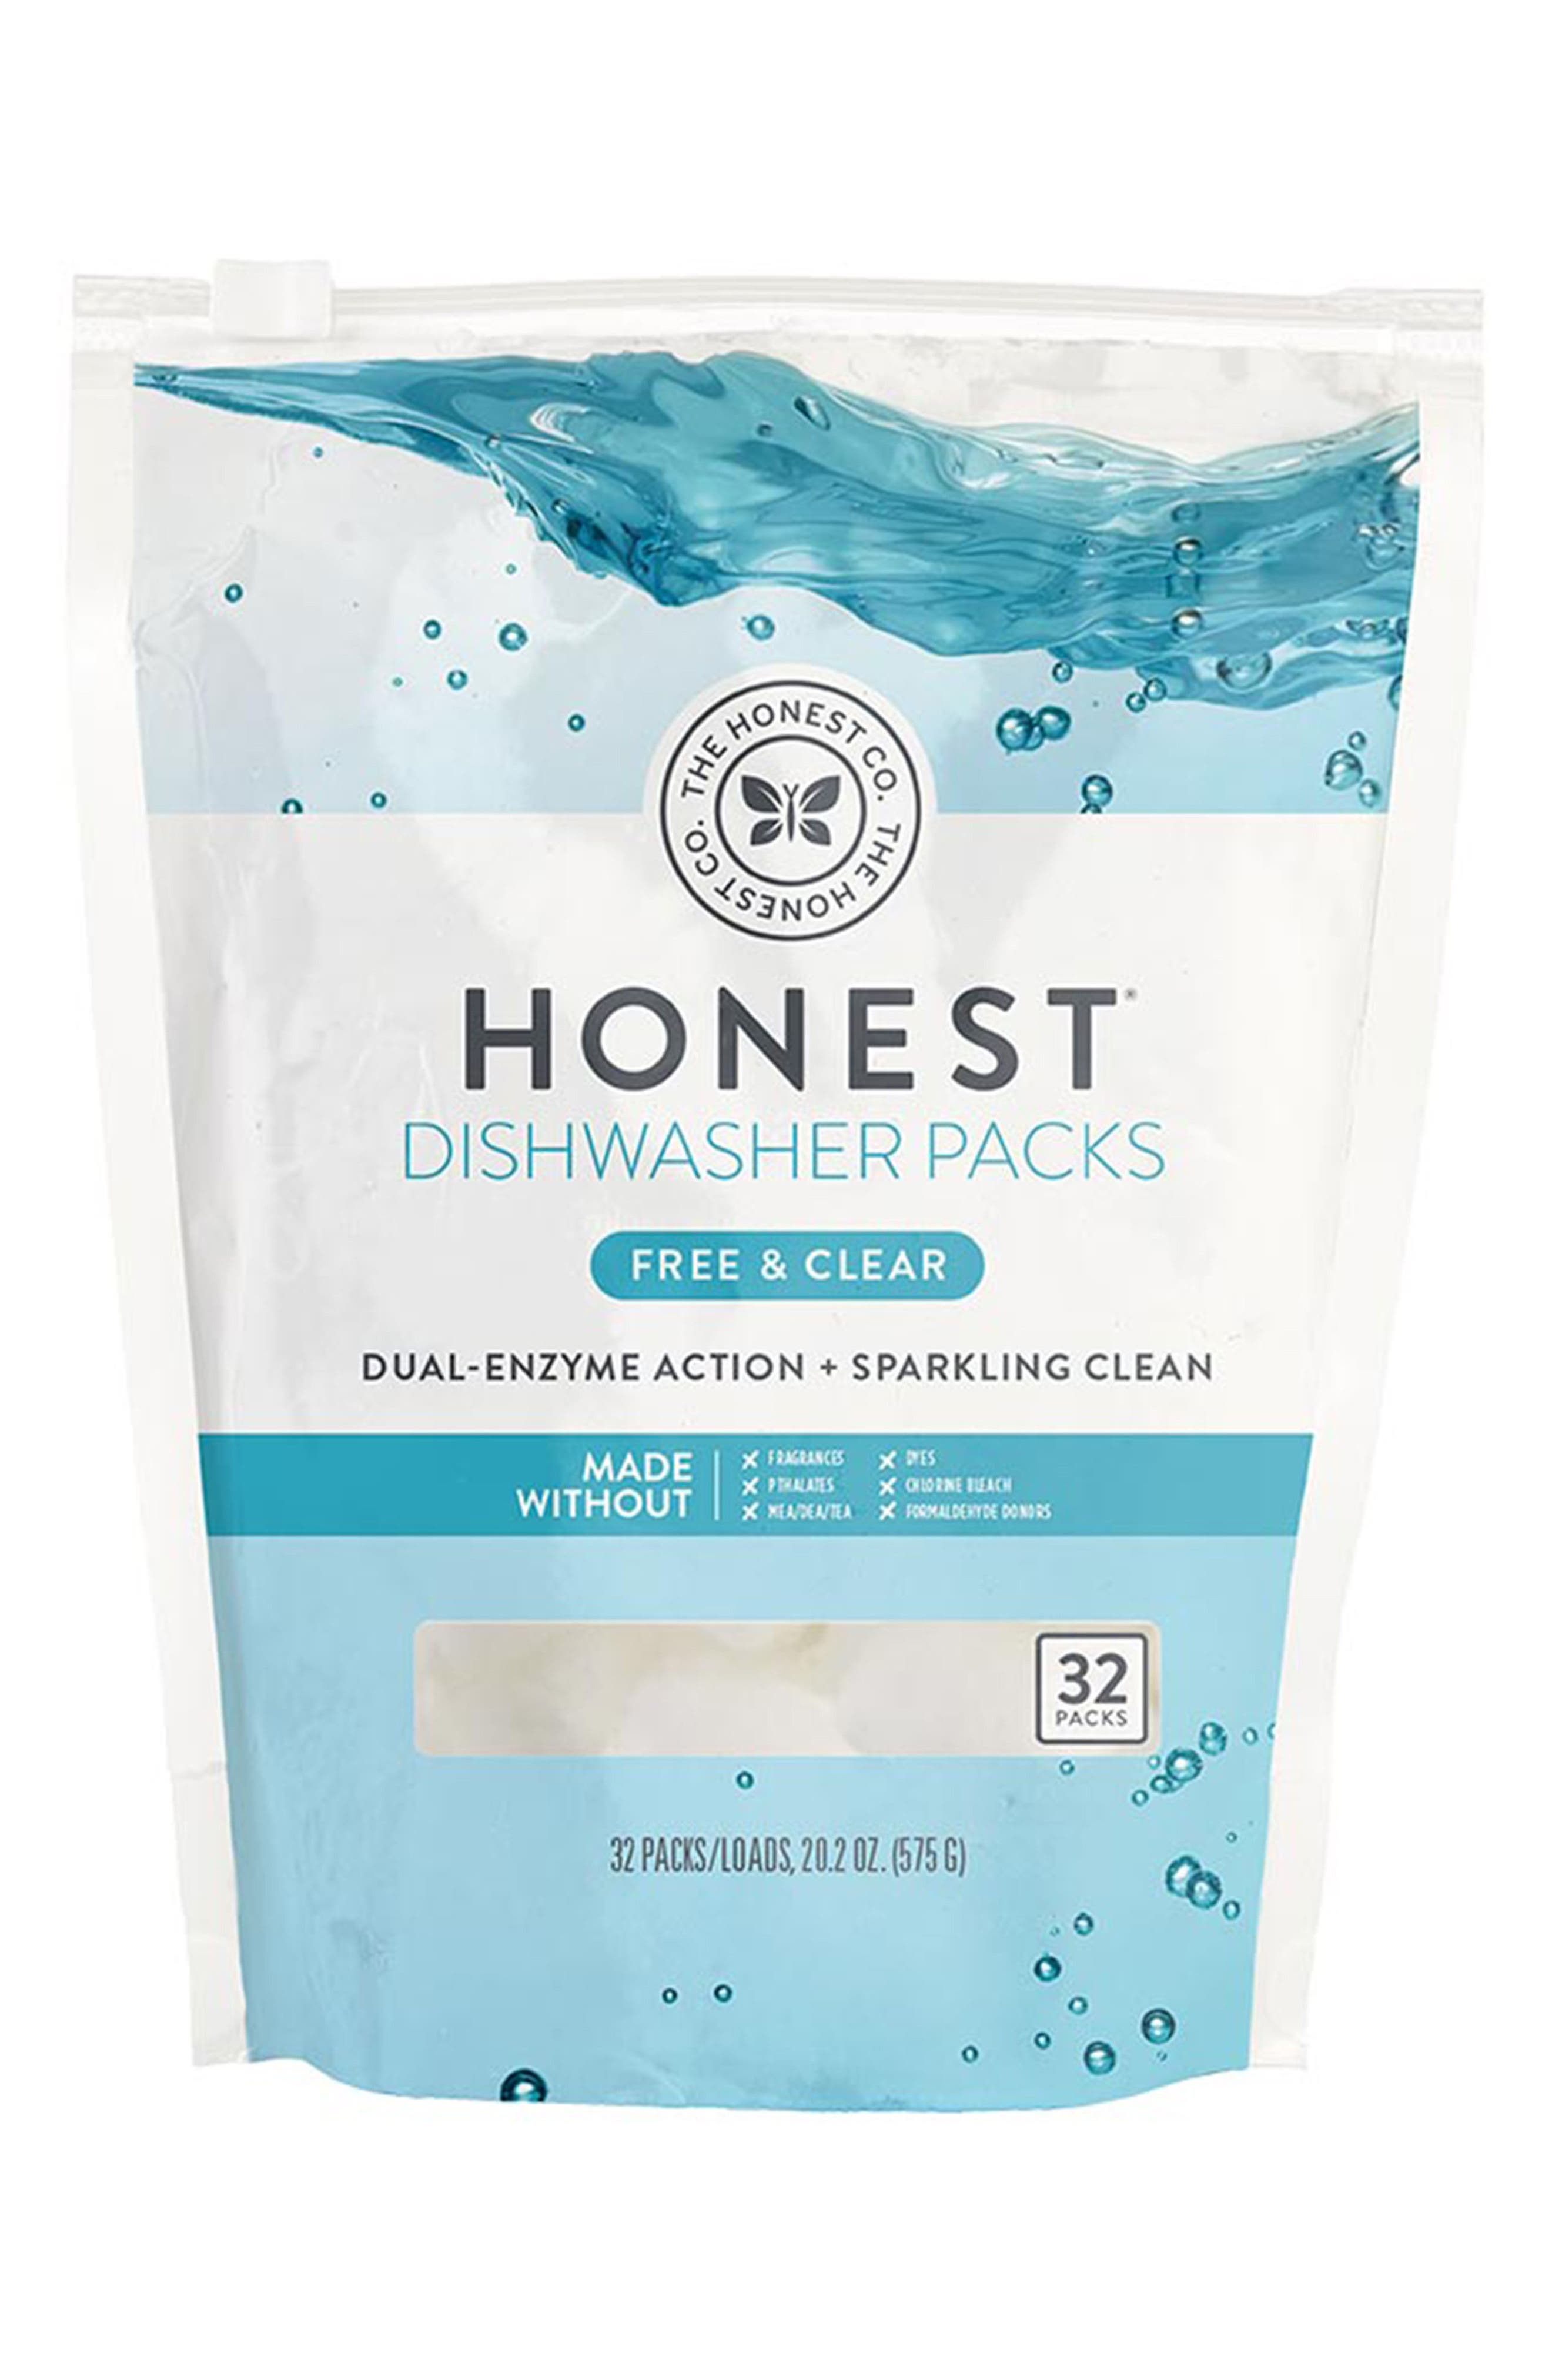 Alternate Image 1 Selected - The Honest Company Free & Clear Dishwasher Packs